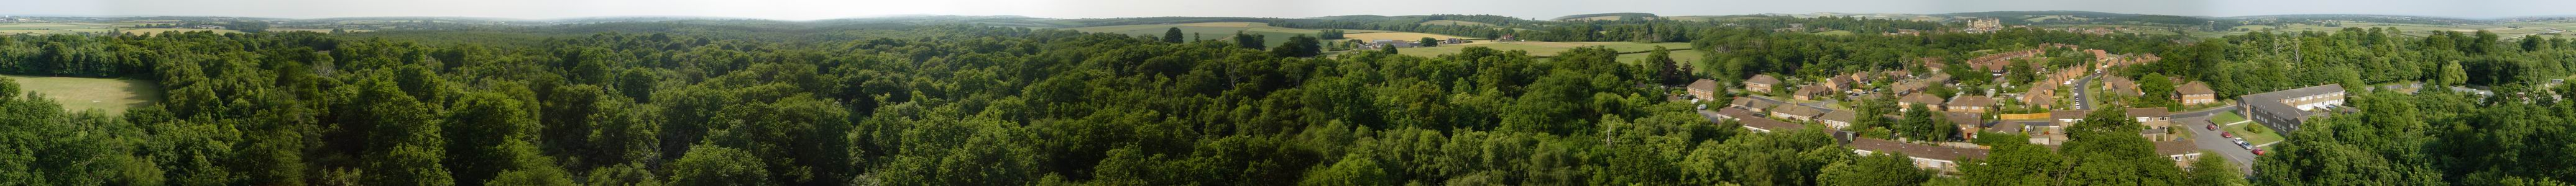 360 degree tree top panorama of countryside to be trashed